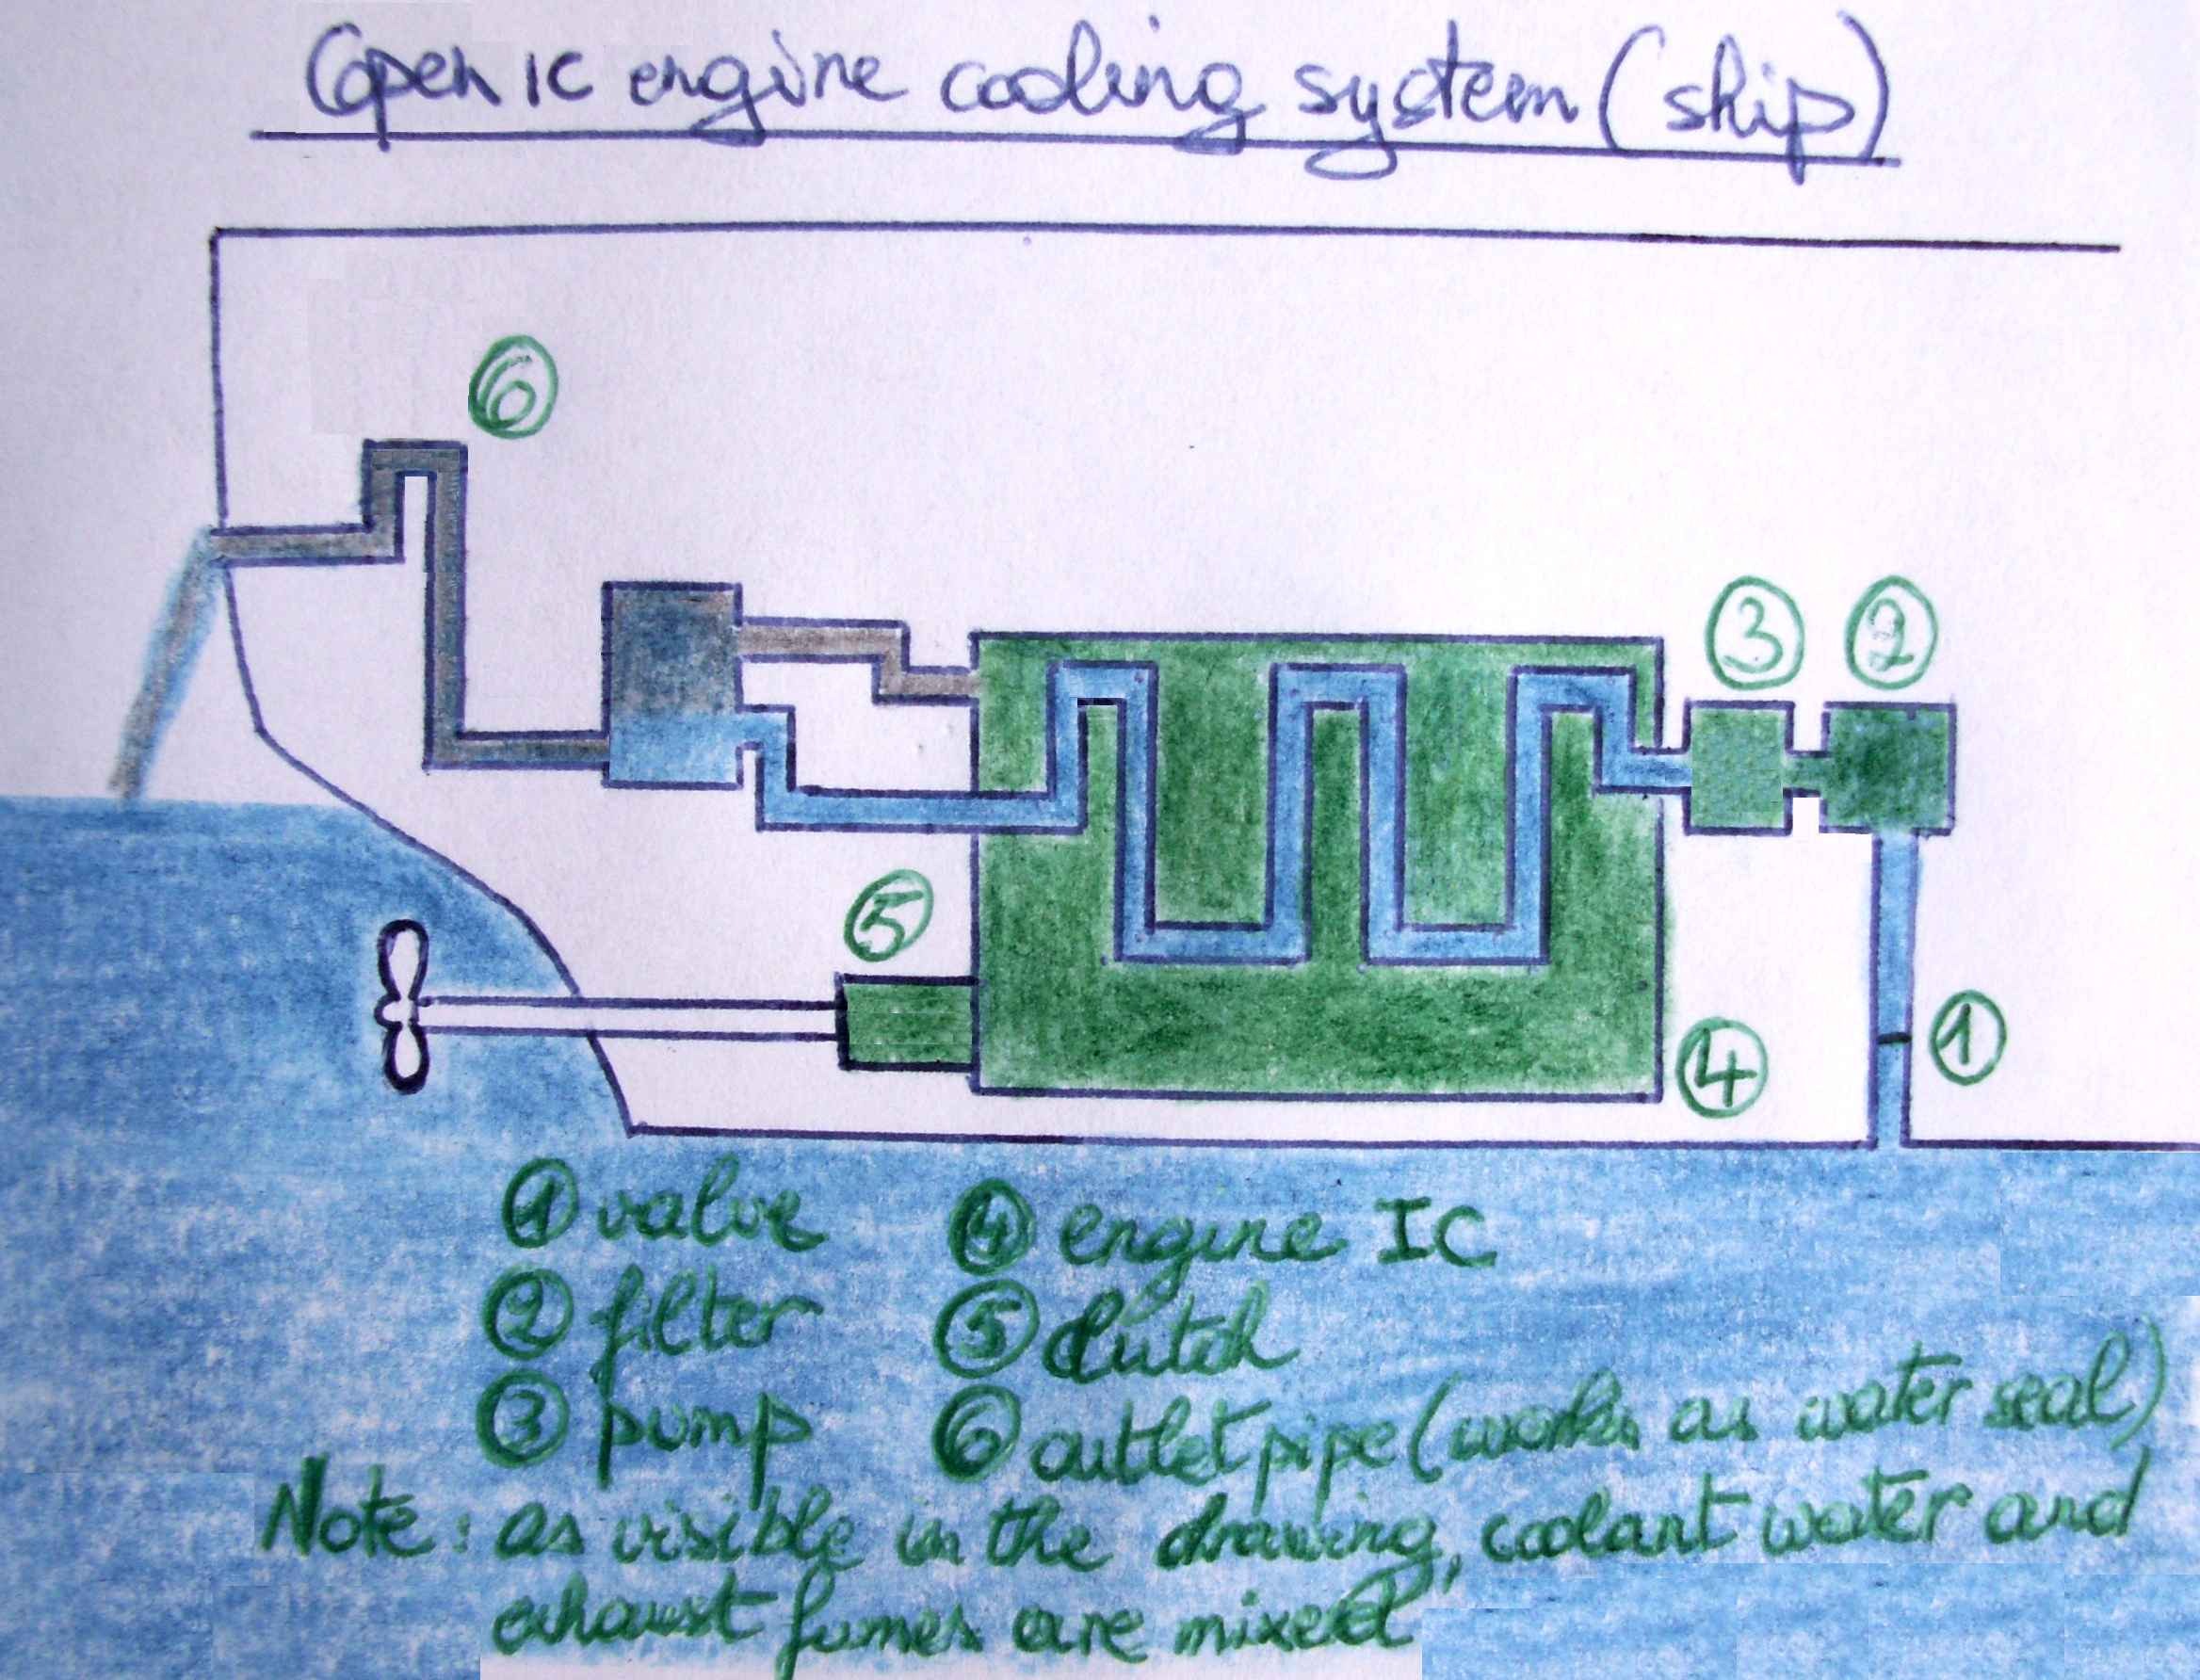 FileOpen IC engine cooling system shipJPG Wikimedia Commons – Internal Combustion Engine Cooling System Diagram